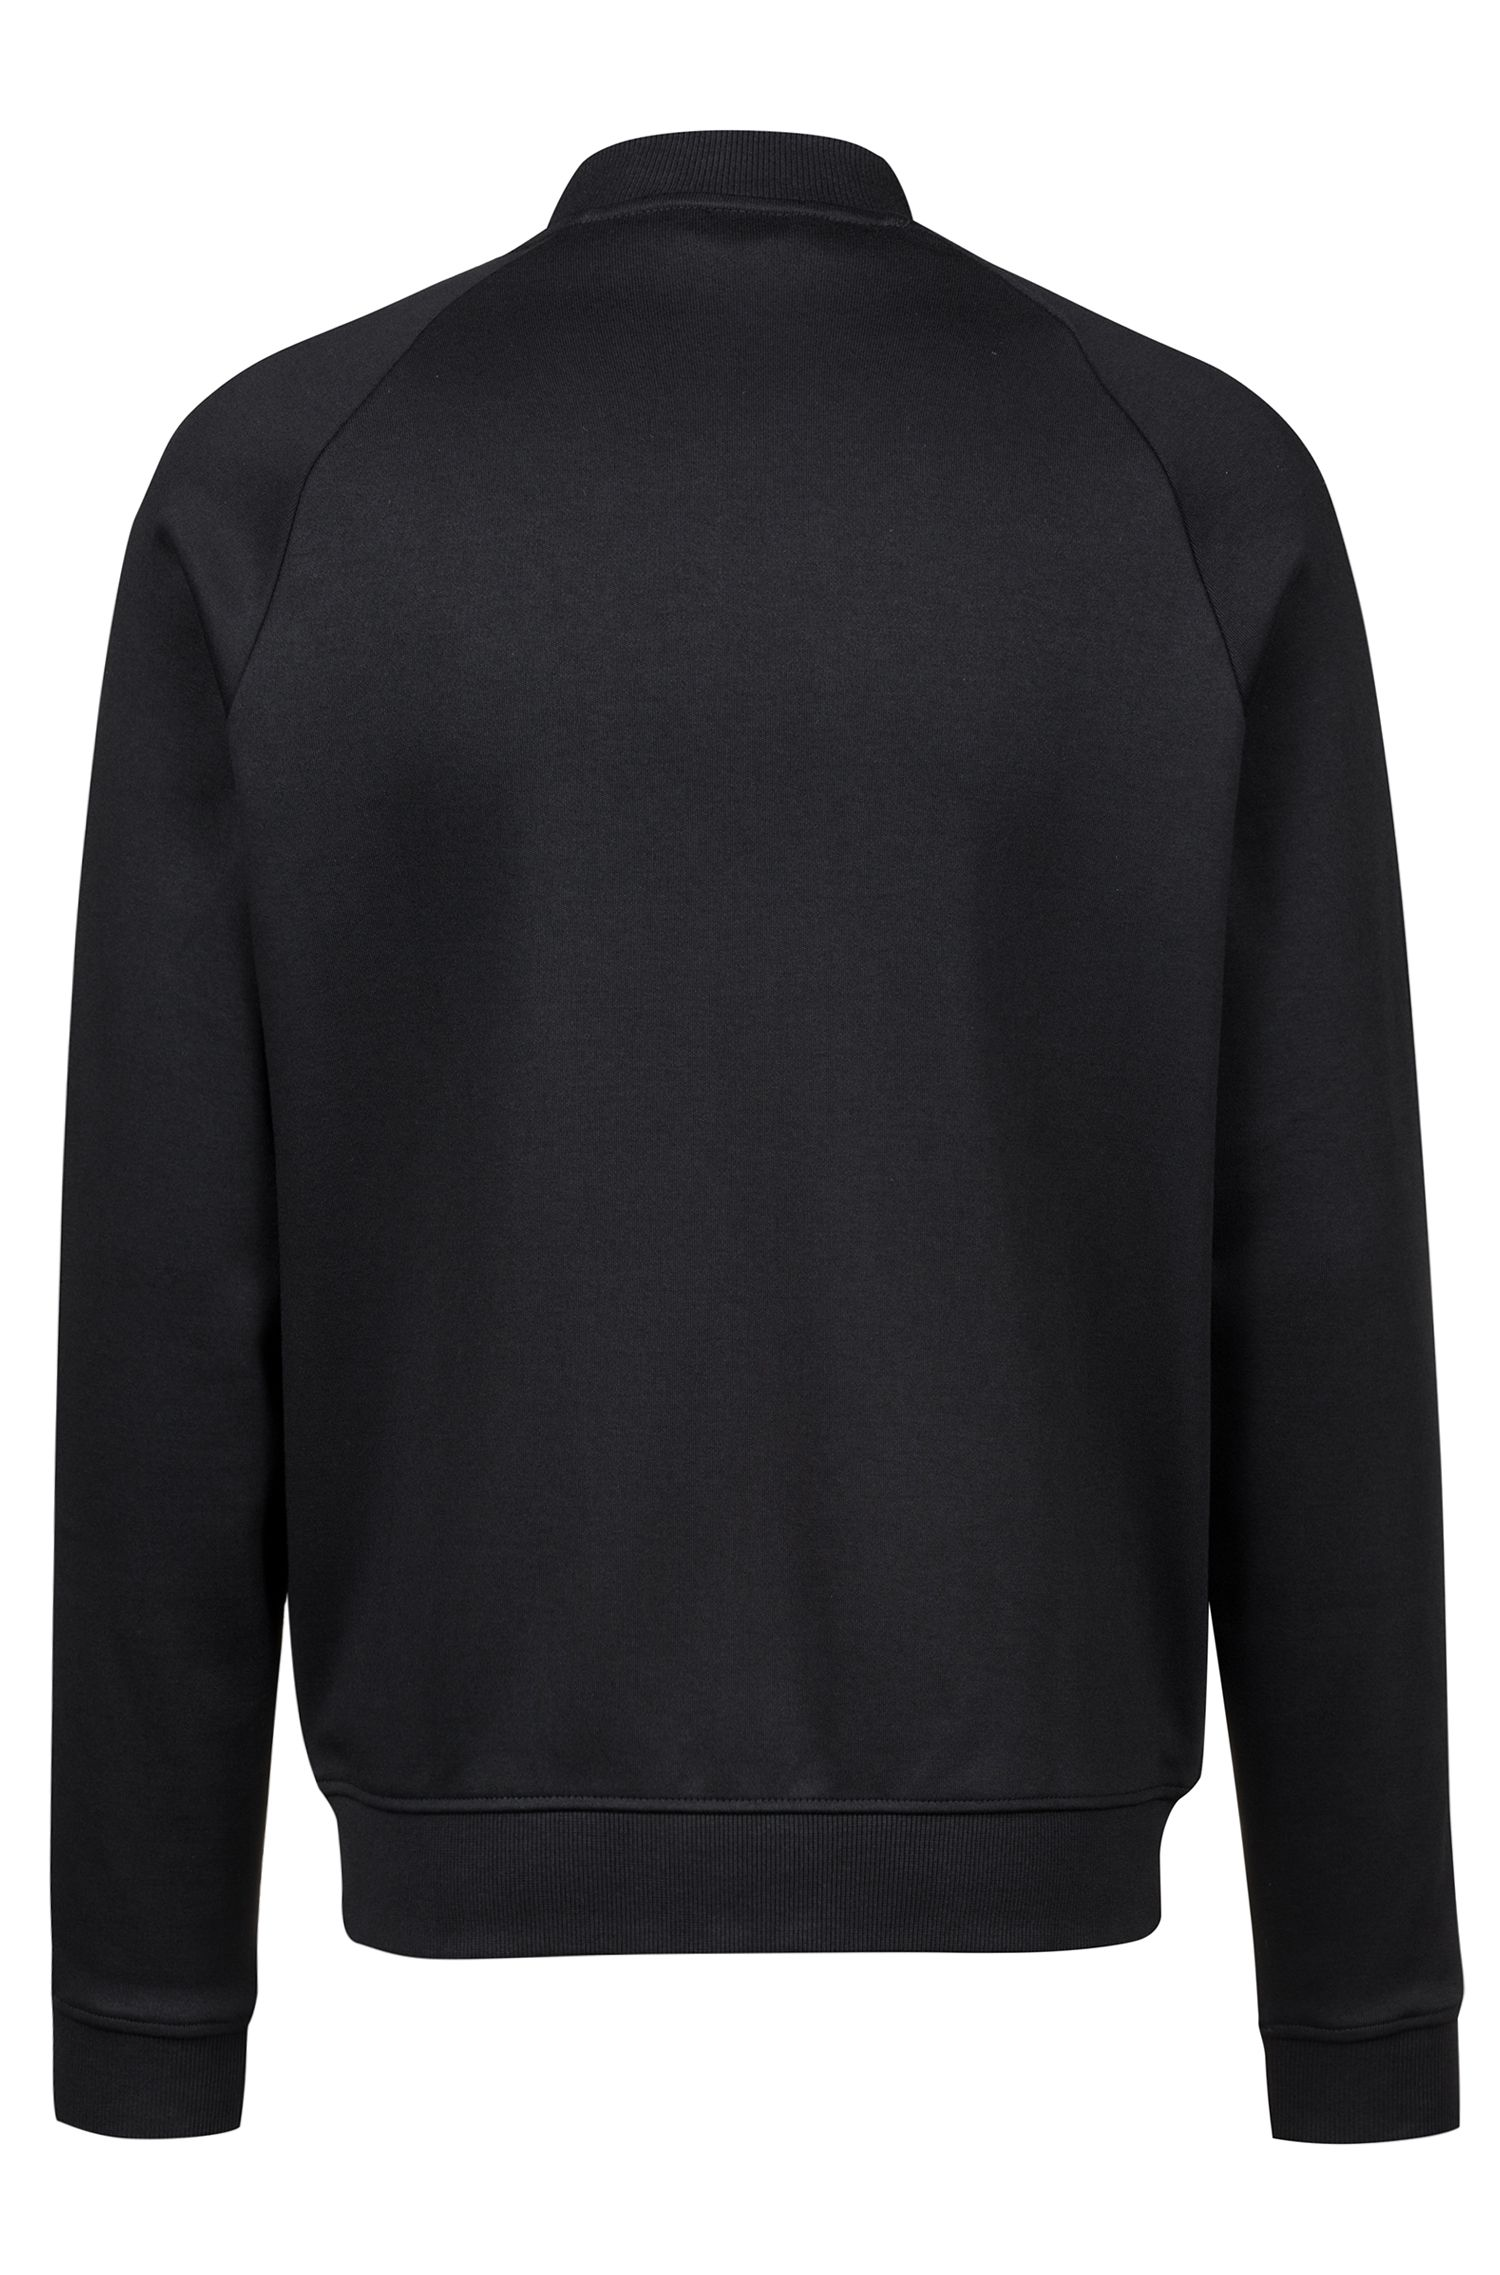 Bomber jacket in interlock cotton with logo-tape sleeves, Black